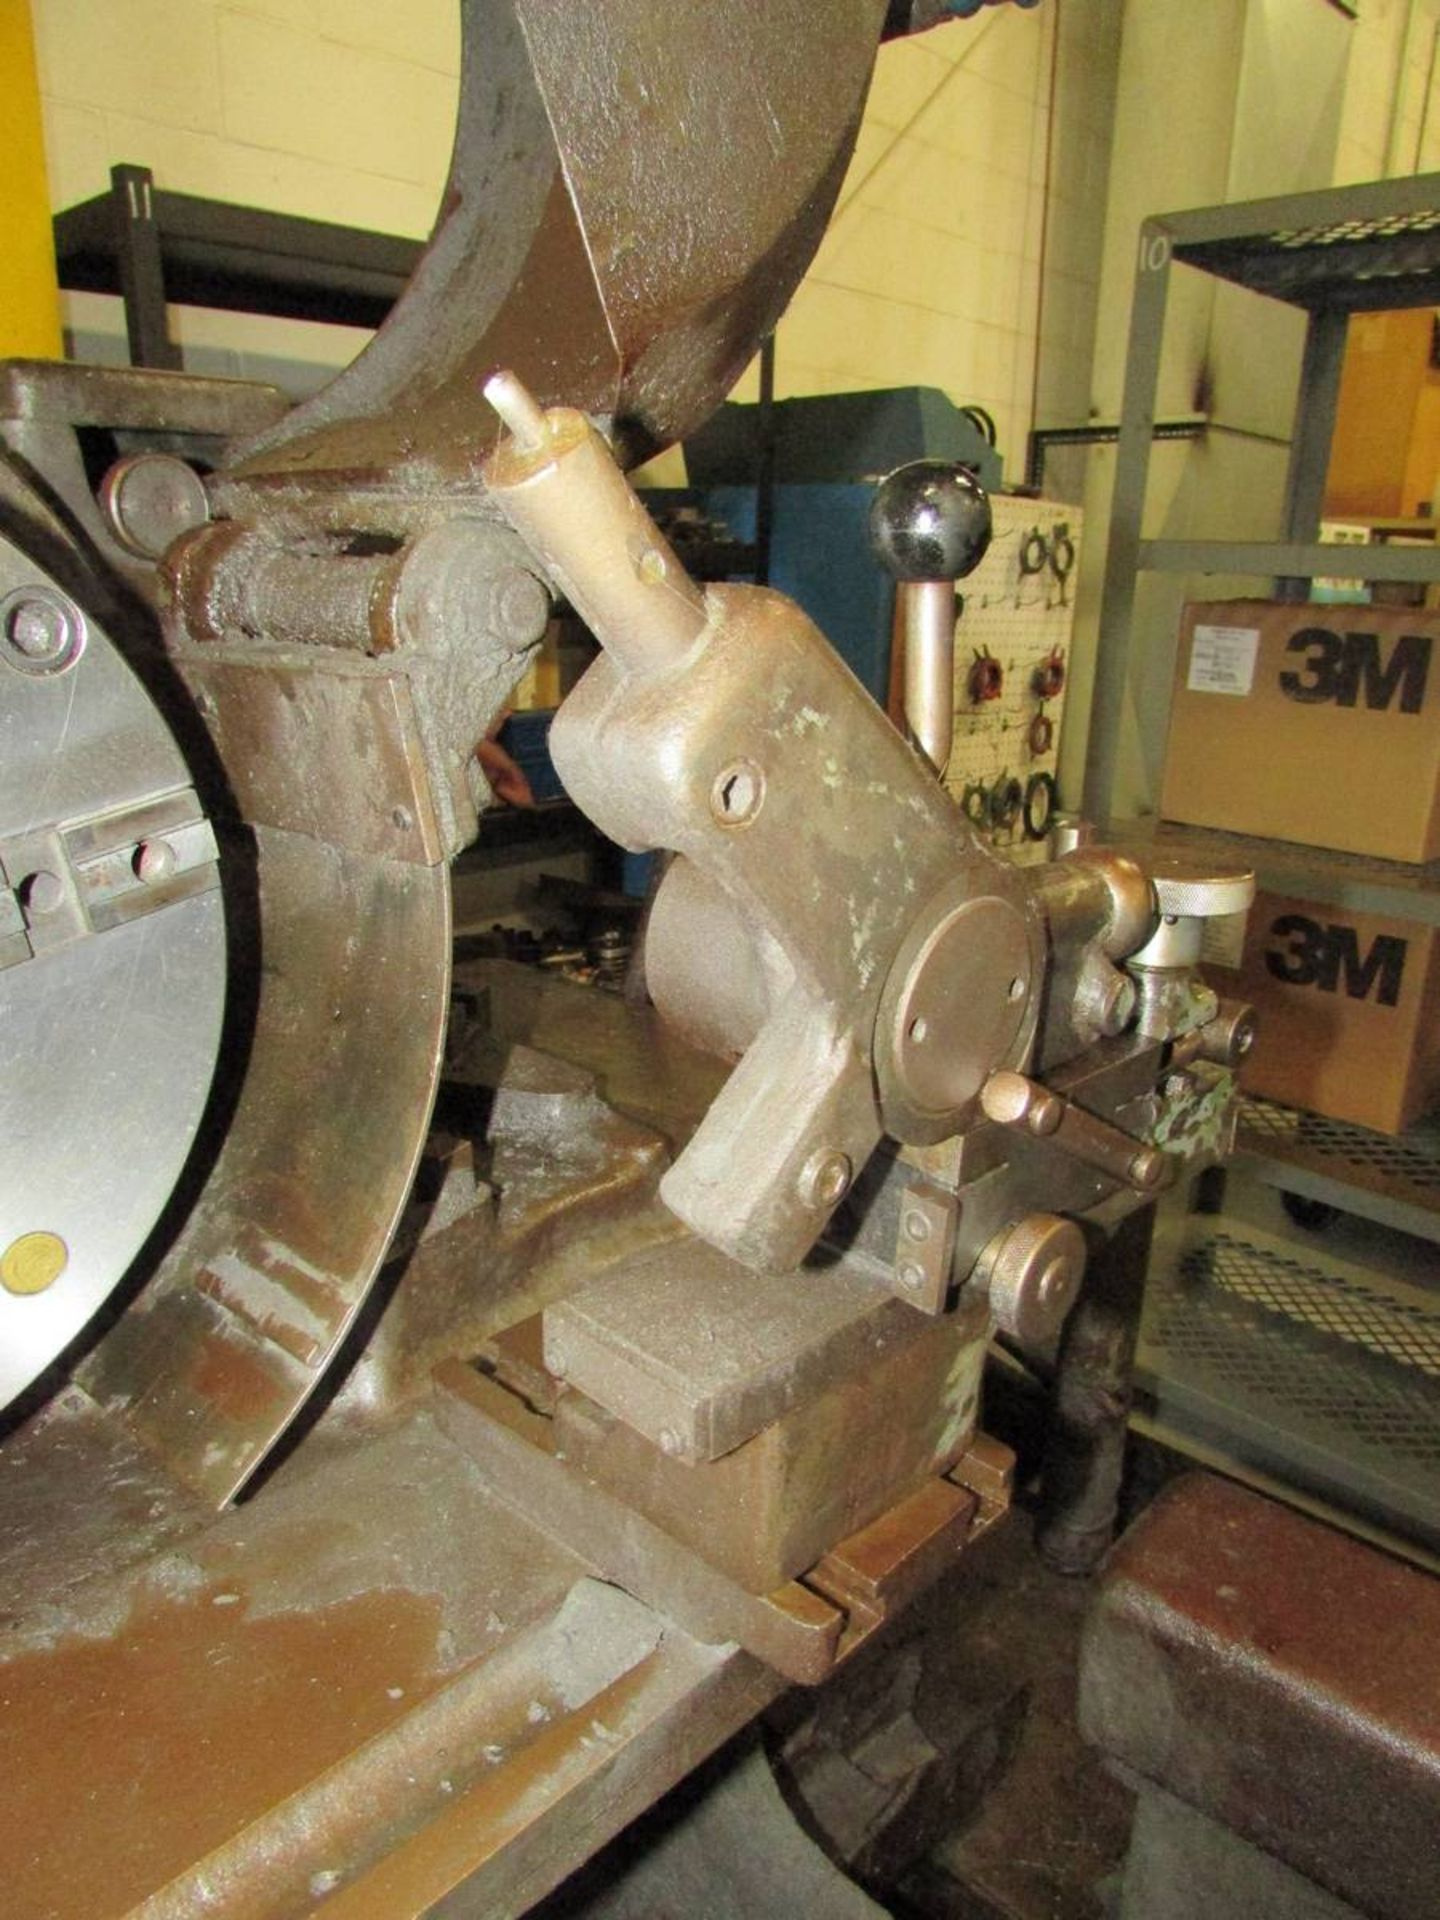 1981 Bryant 1116 ID Cylindrical Grinder - Image 5 of 20